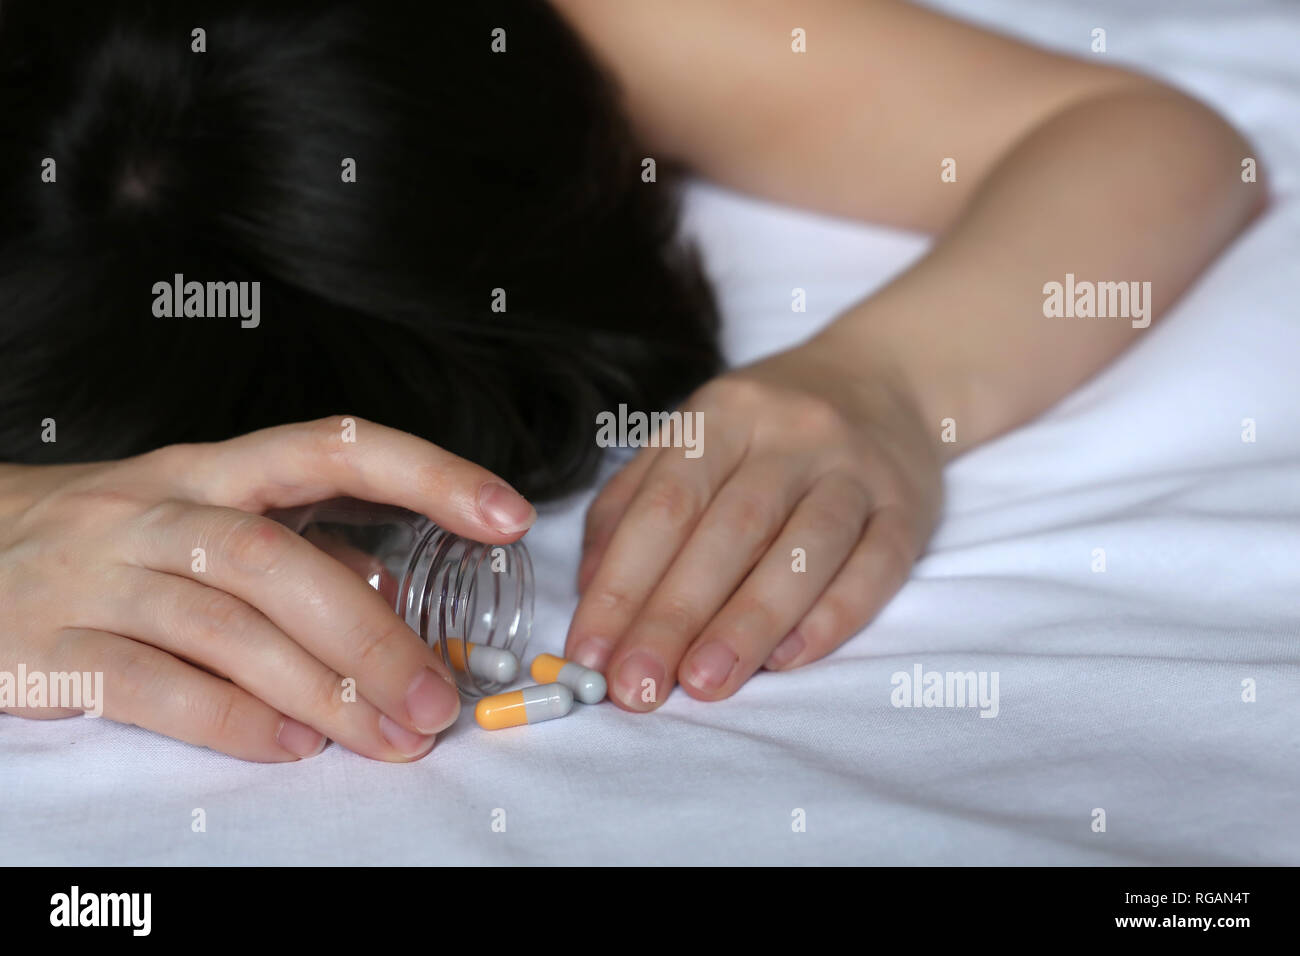 Girl lying on the bed with pills scattered. Concept of taking drugs, illness, sleeping pill, overdose or suicide - Stock Image